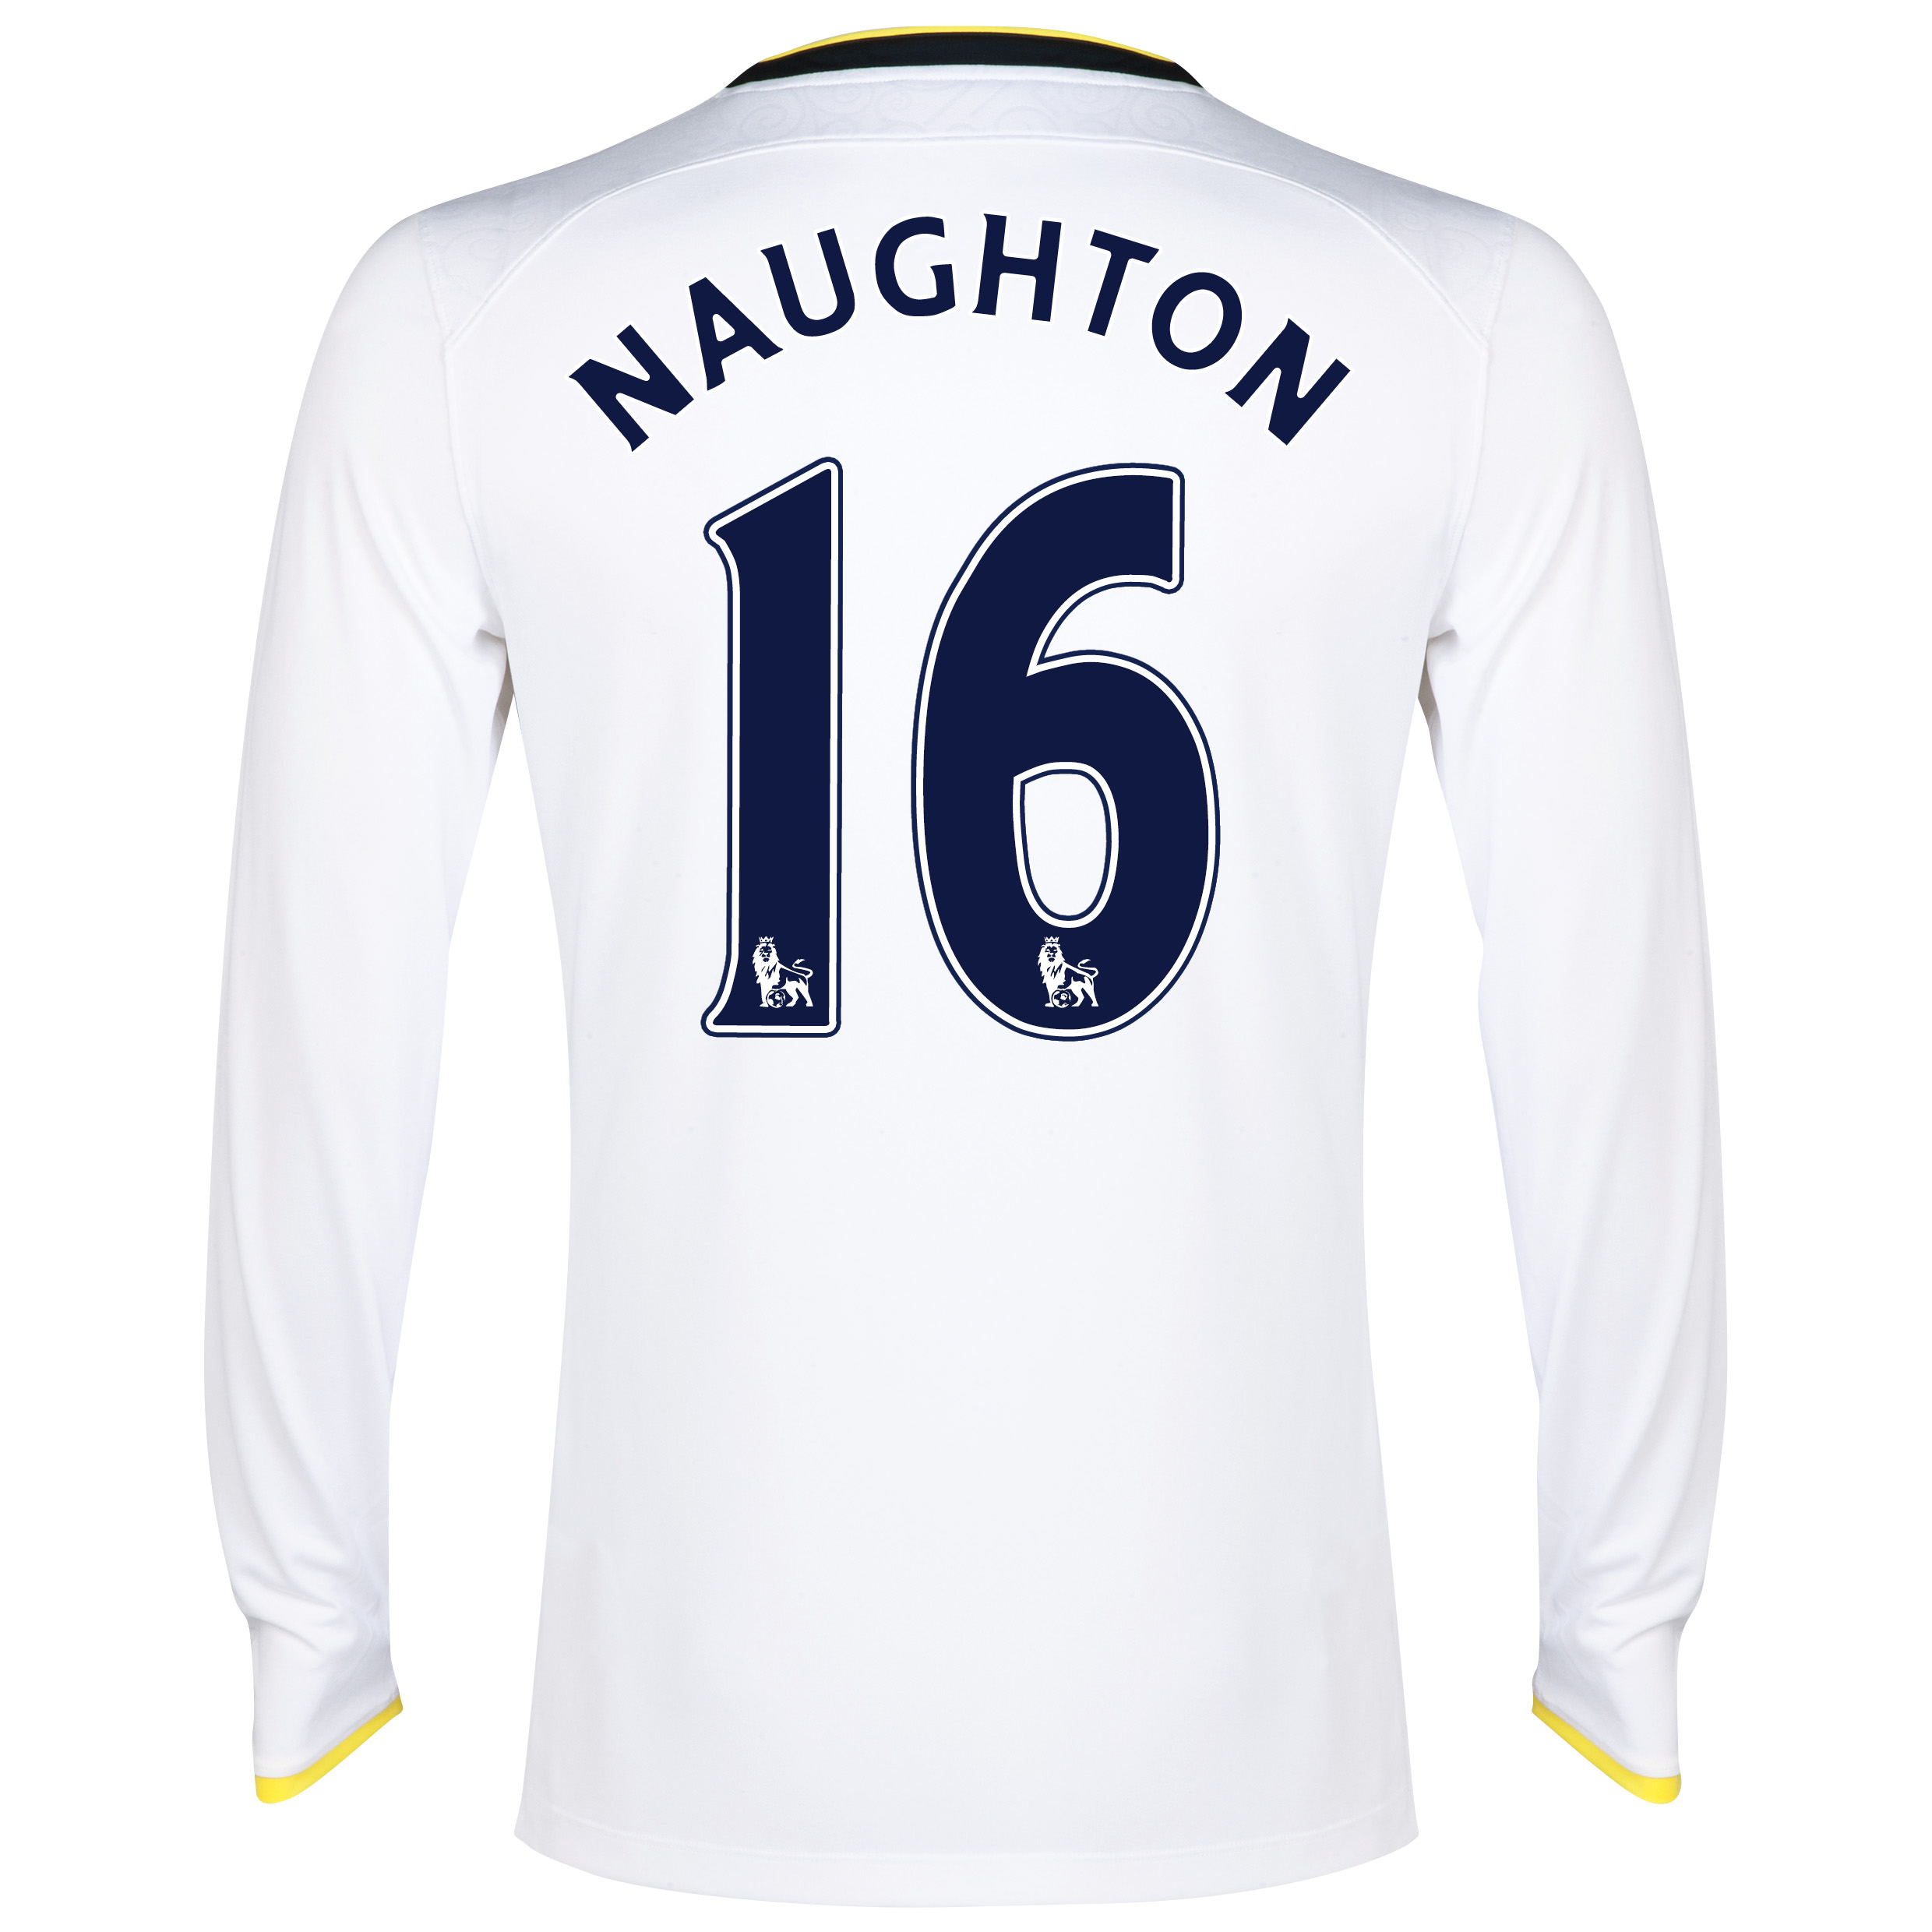 Tottenham Hotspur Home Shirt 2014/15 - Long Sleeve with Naughton 16 printing